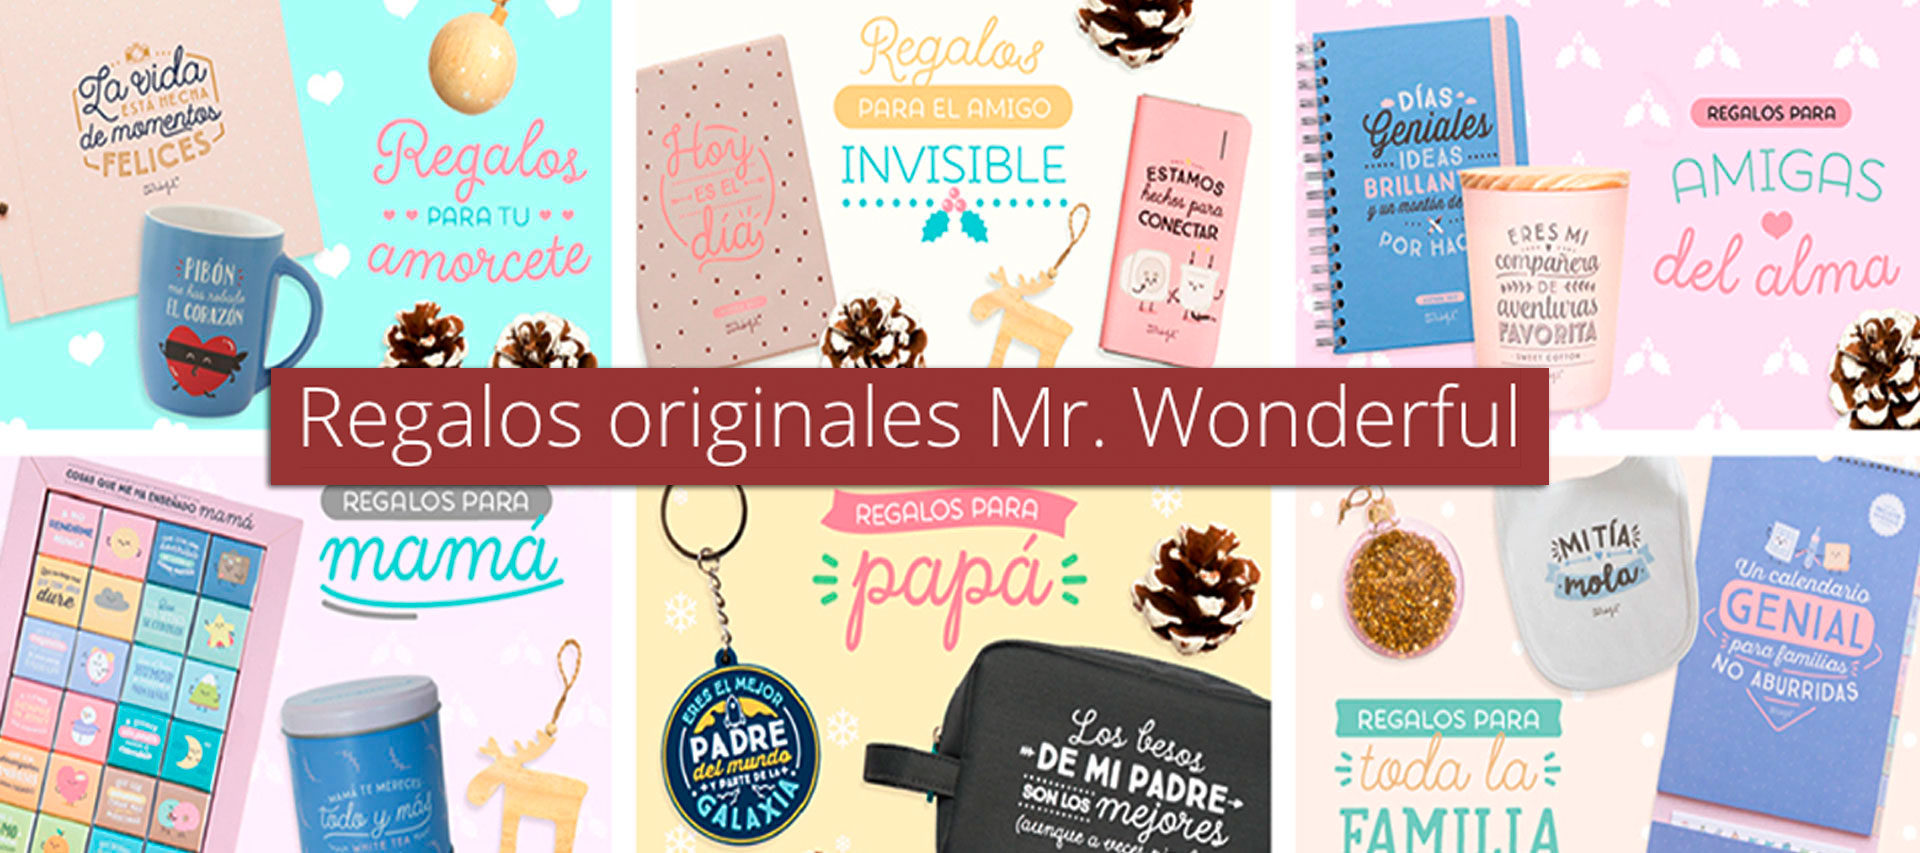 Regalos originales Mr. Wonderful